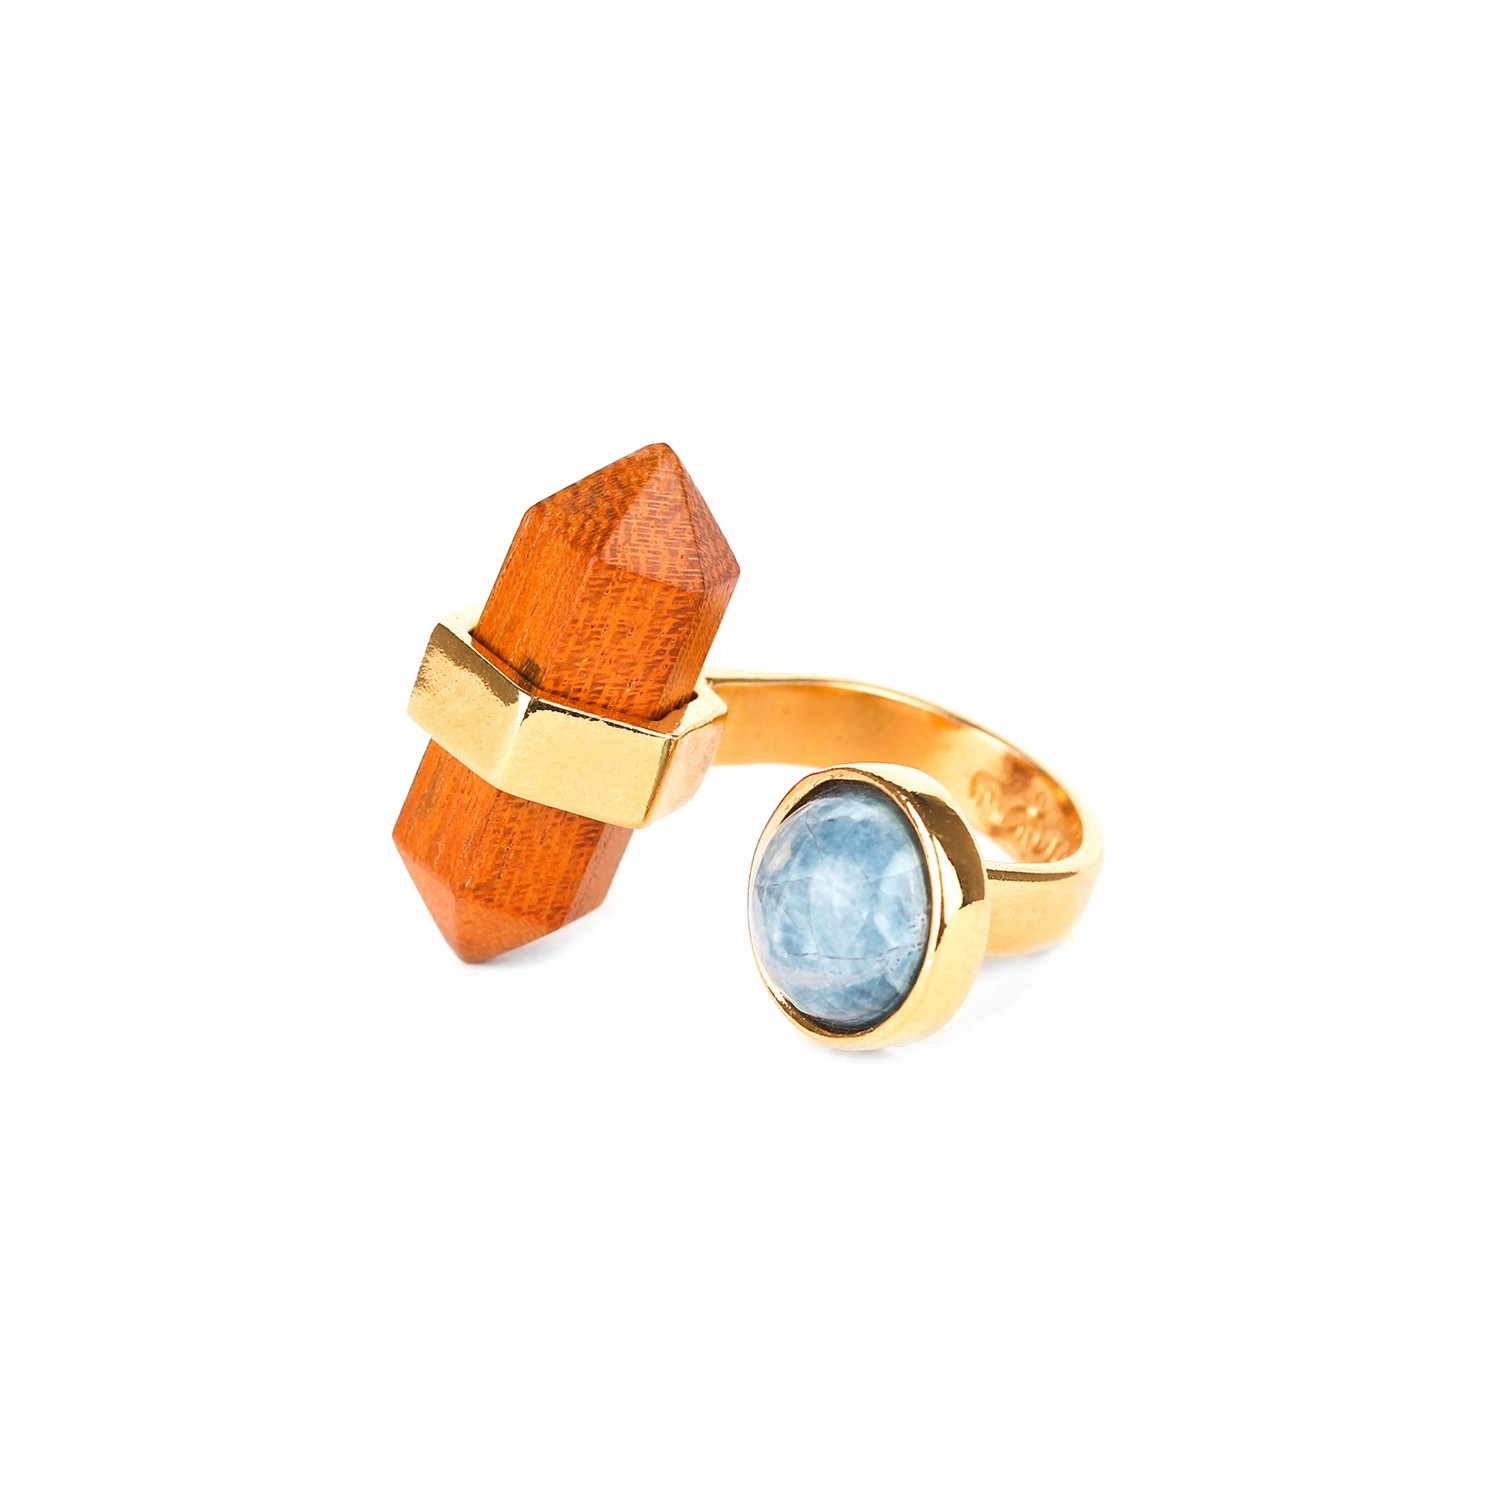 WOOD DIAMONDS duo ring